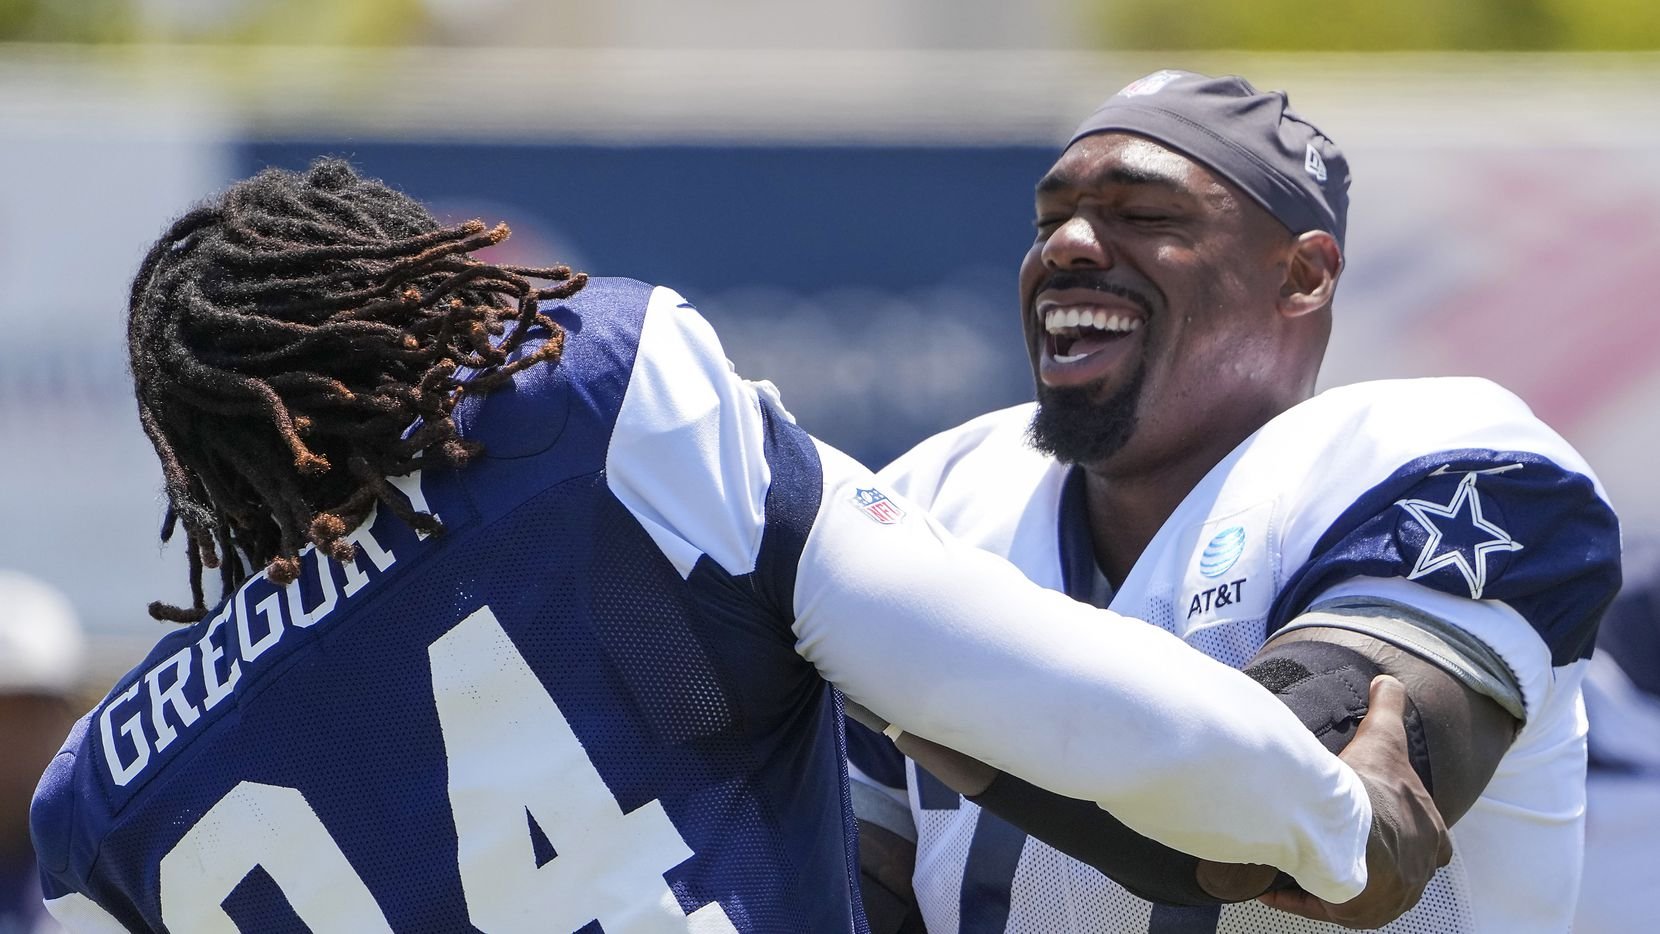 Dallas Cowboys defensive end Randy Gregory (94) works against tackle Tyron Smith (77) during a practice at training camp on Saturday, July 31, 2021, in Oxnard, Calif.